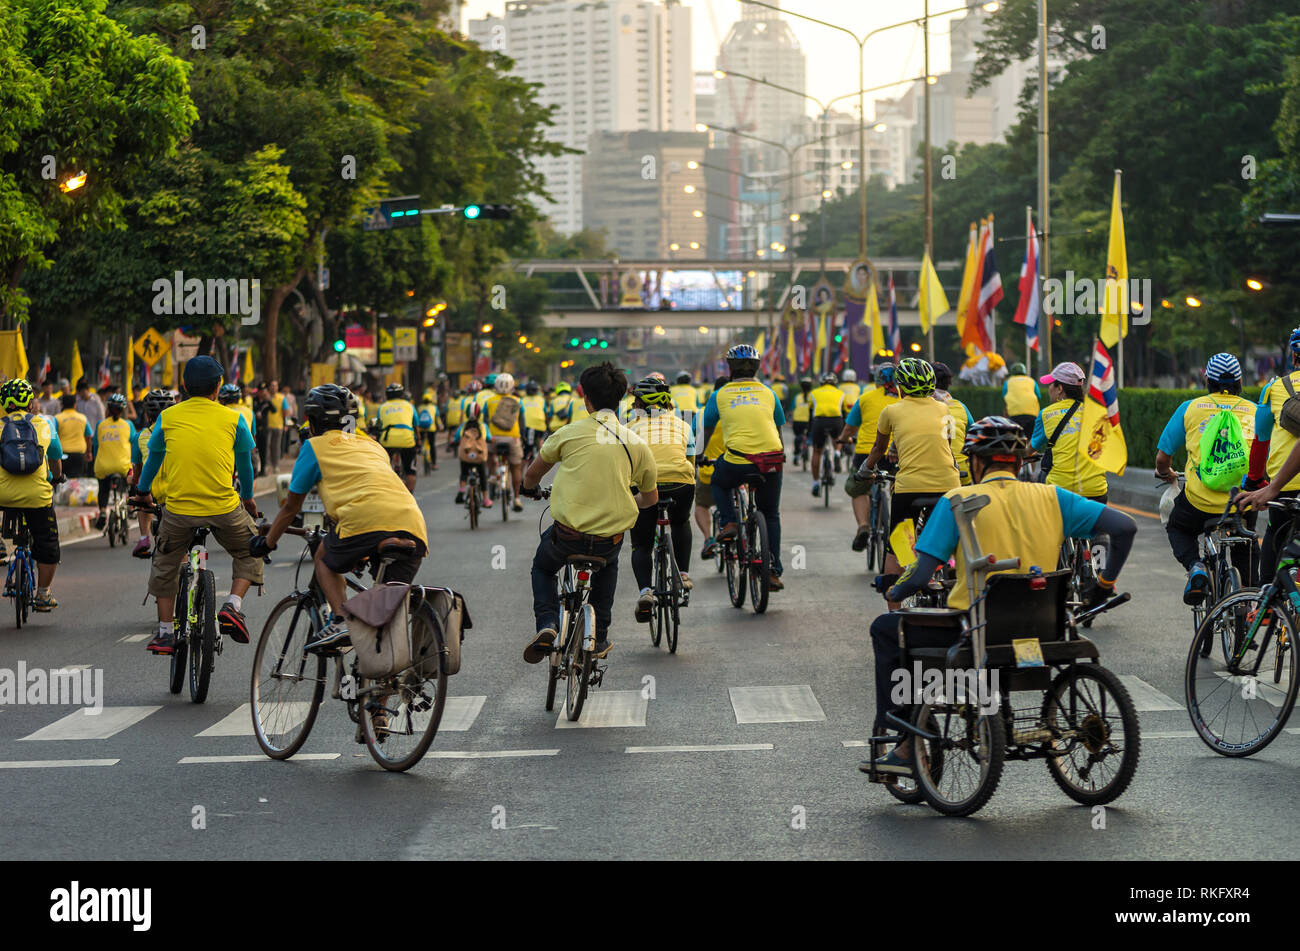 BANGKOK - DEC 11 : Event 'Bike for dad' from Thailand. Many people go to Bike for dad event to show respected to The King of Thailand on December 11,  - Stock Image